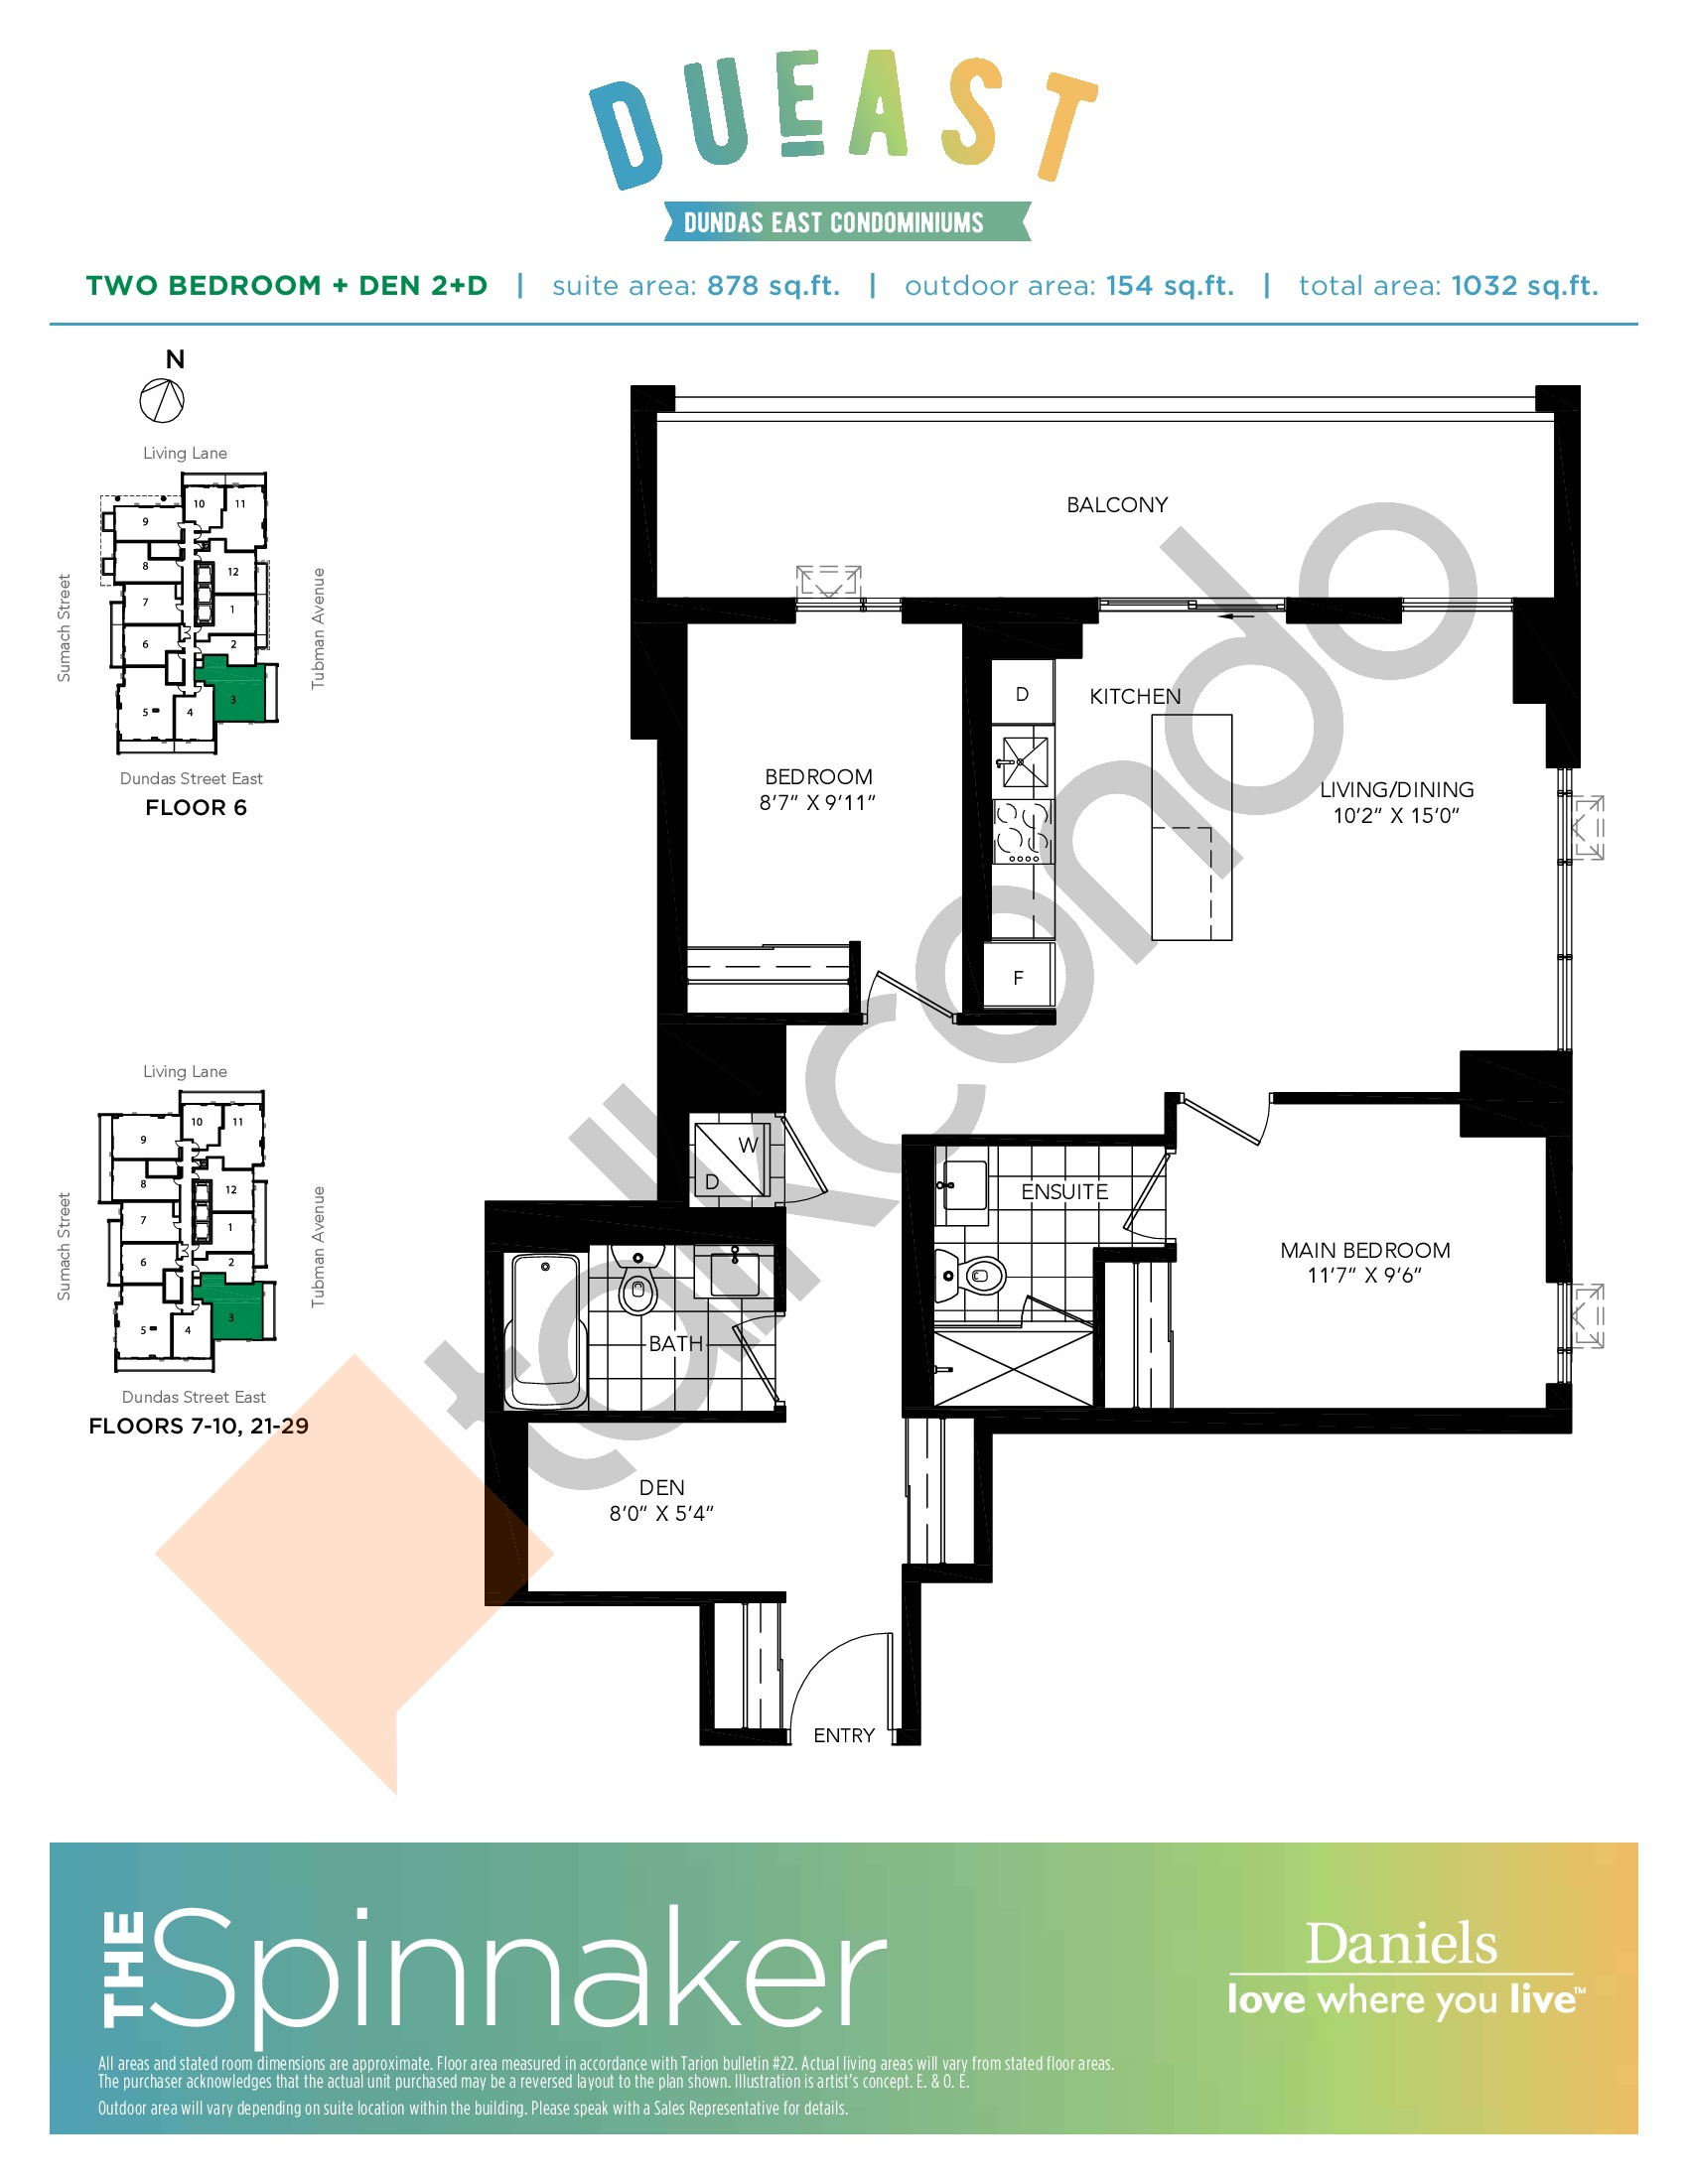 The Spinnaker (2+D) Floor Plan at DuEast Condos - 878 sq.ft